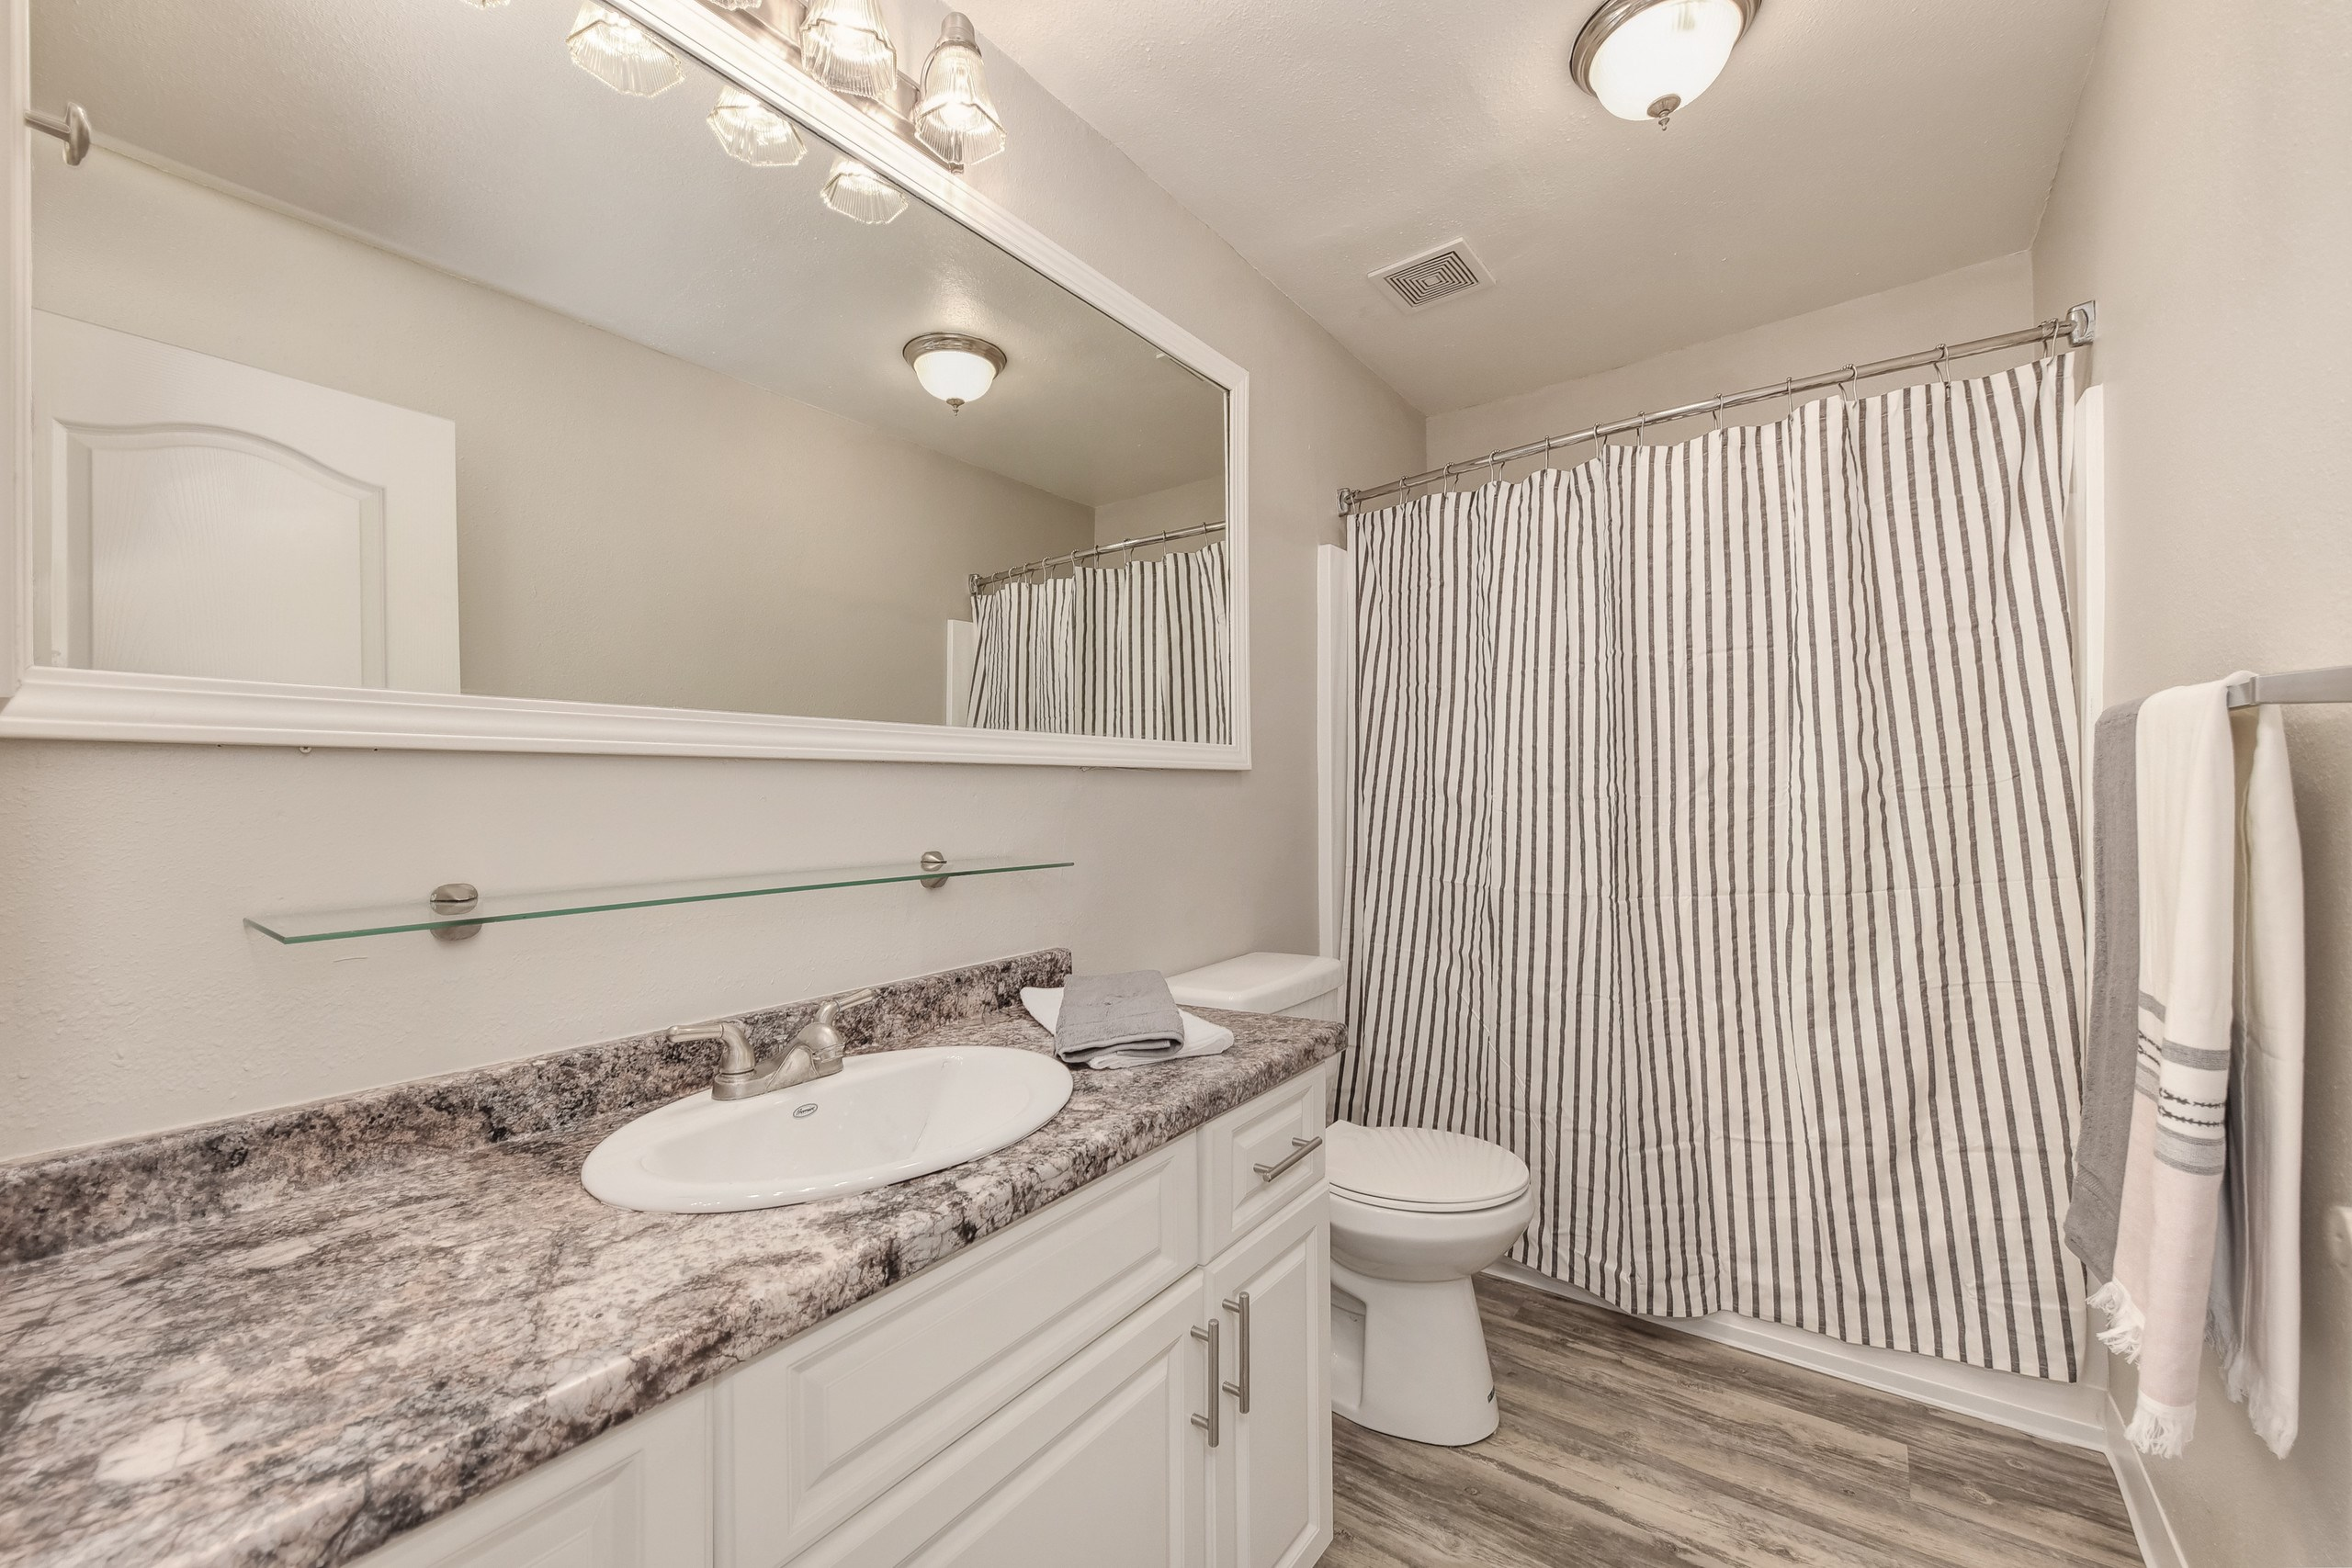 Bathroom with large mirror and white cabinetry